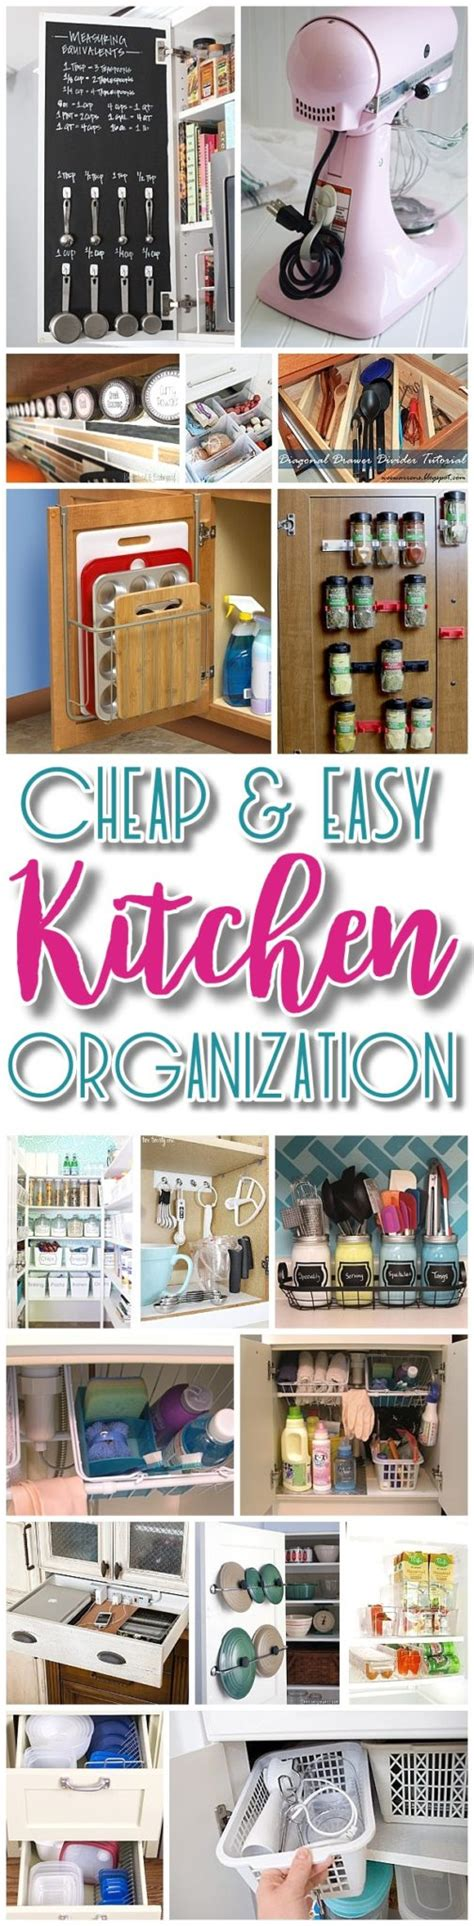 kitchen organization ideas budget easy budget ways to organize your kitchen